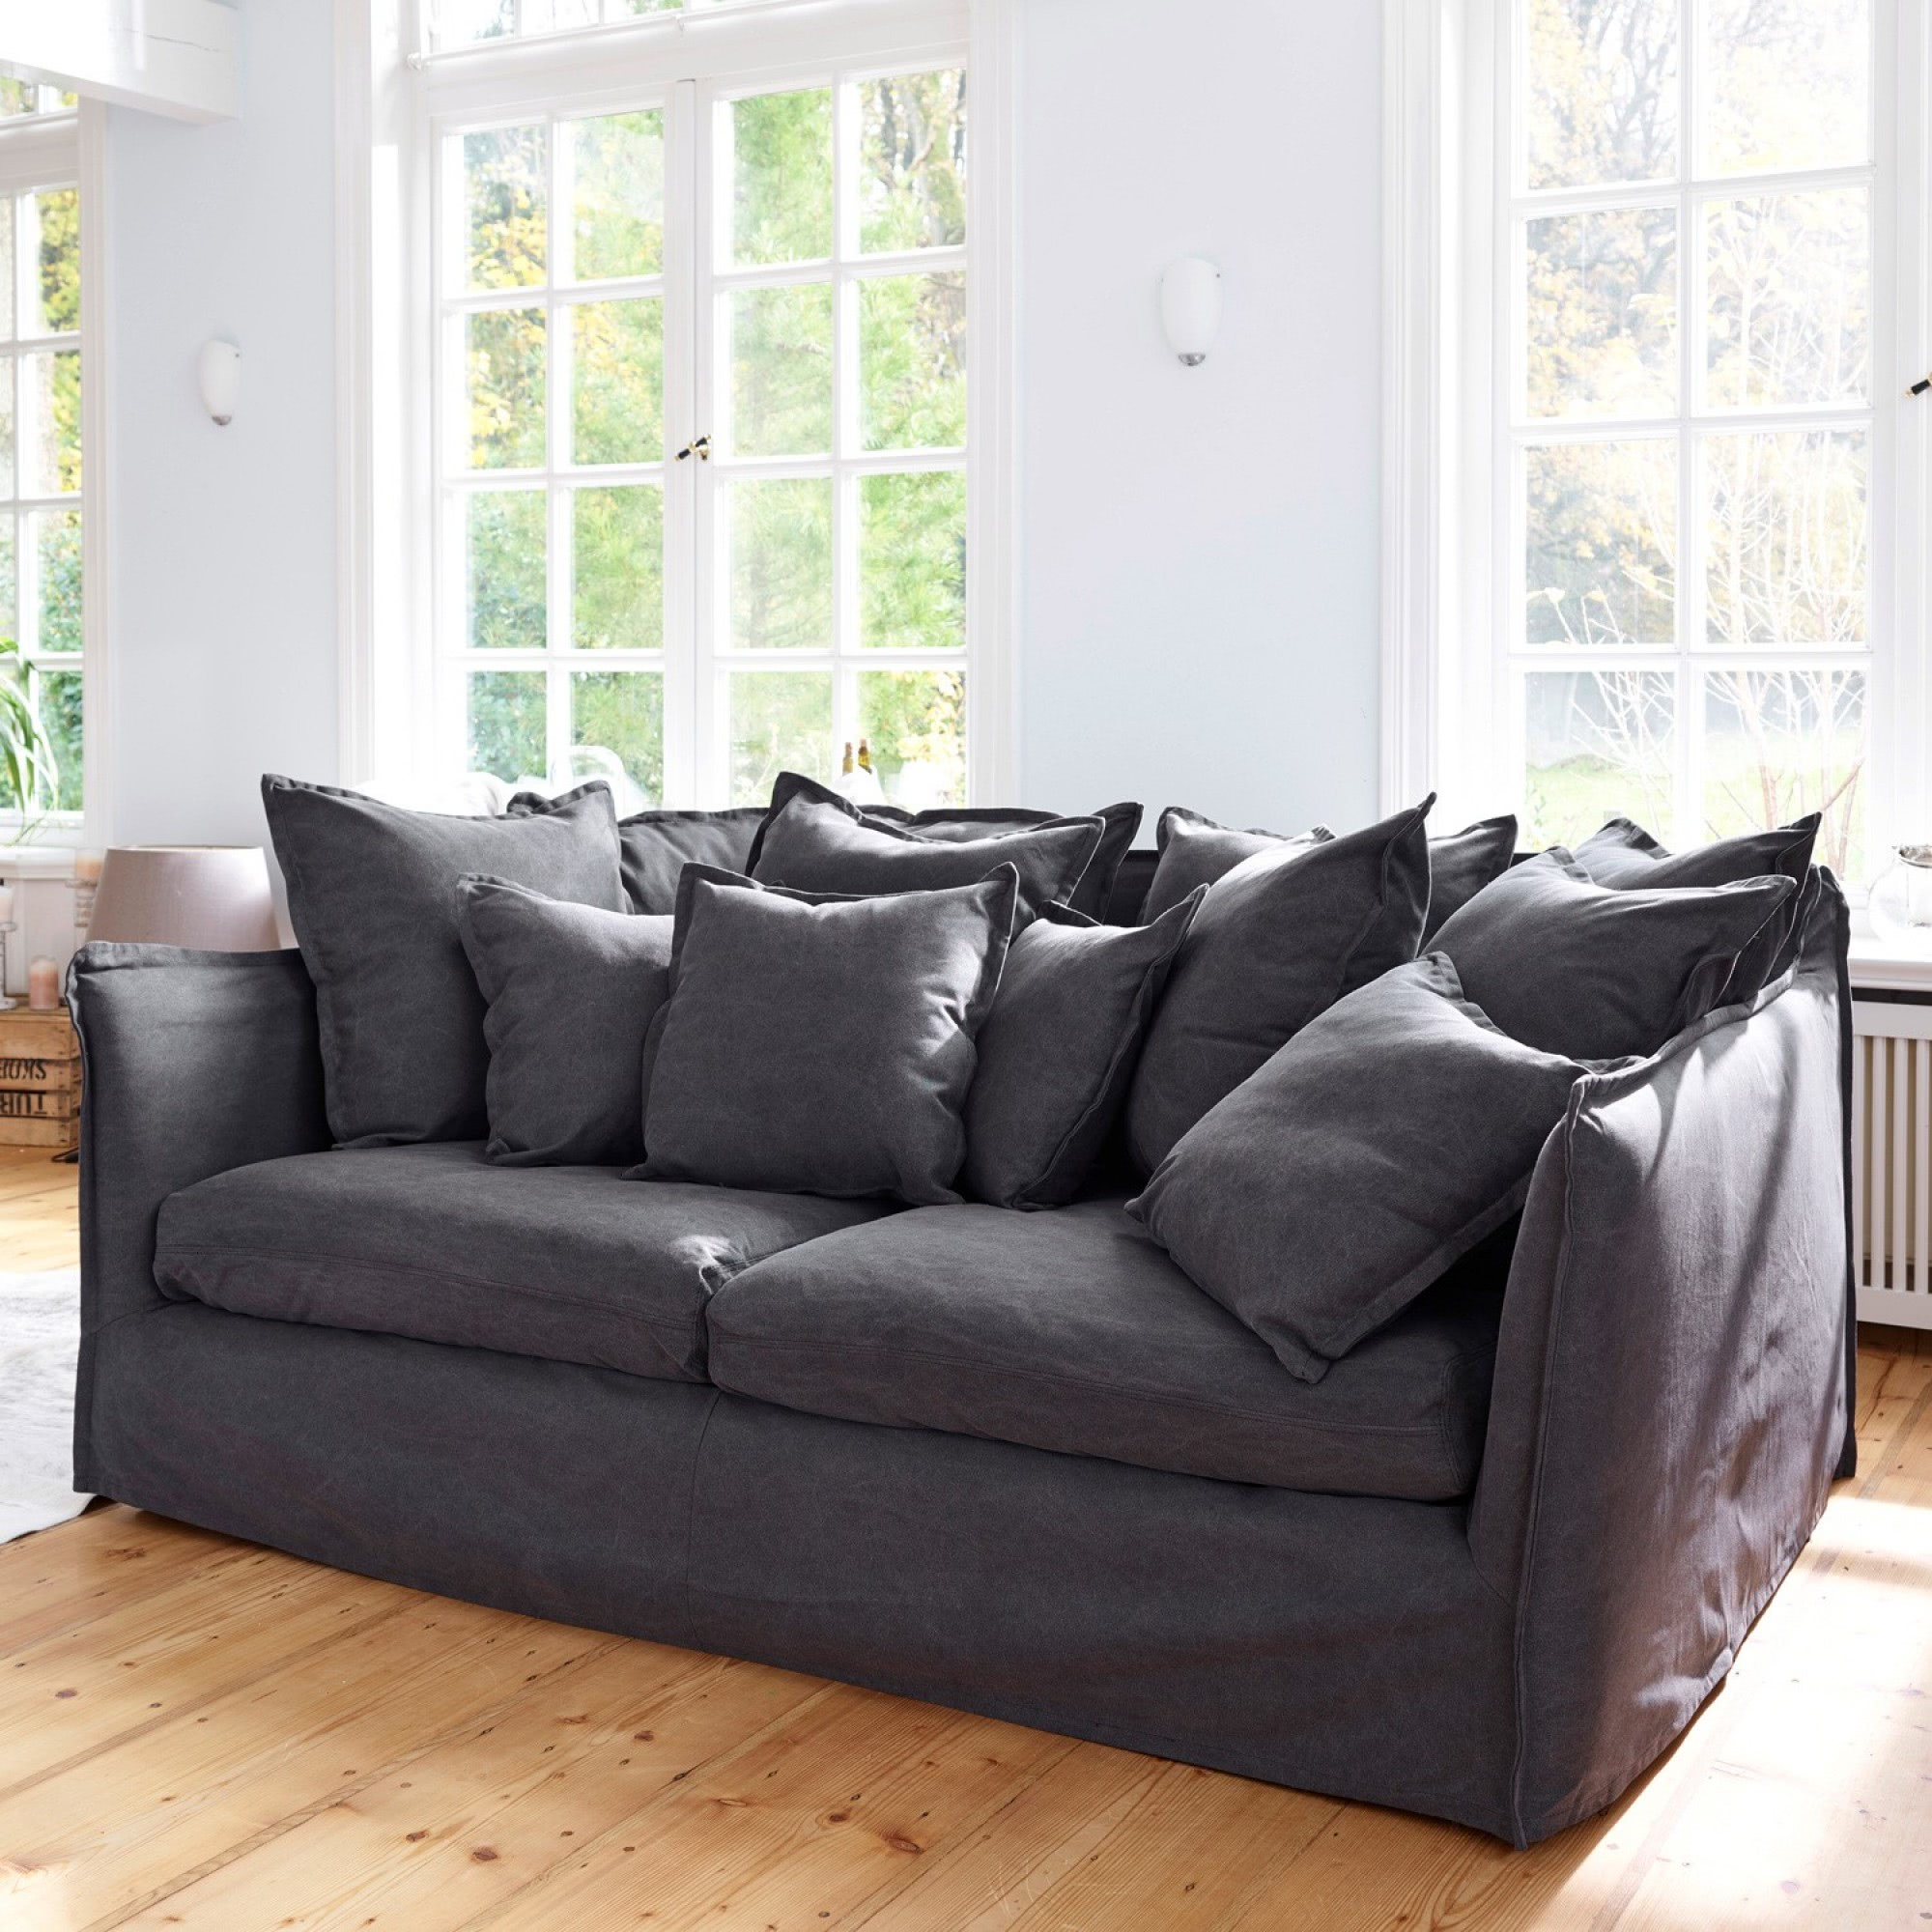 couch anthrazit beautiful couch anthrazit best antik sofa. Black Bedroom Furniture Sets. Home Design Ideas